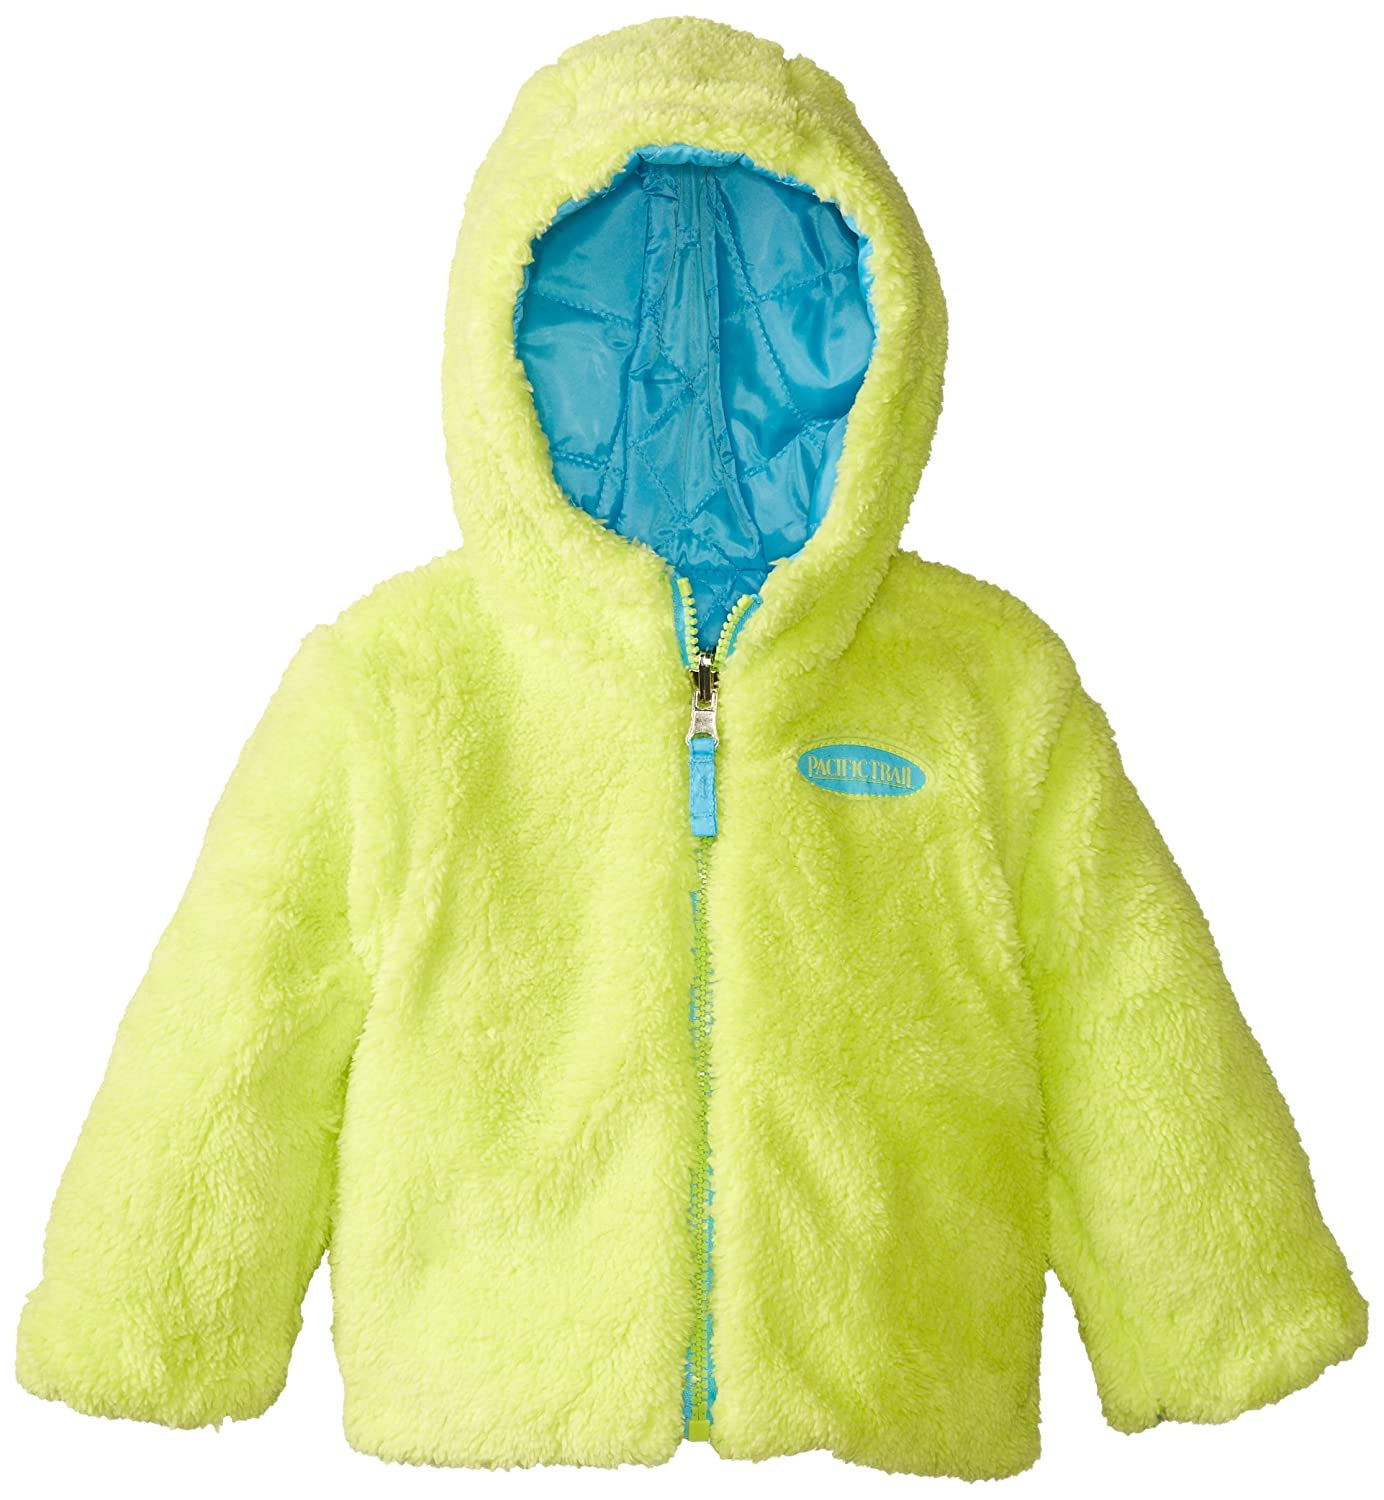 Amazon.com: Pacific Trail Kids Baby chamarra Acolchada ...